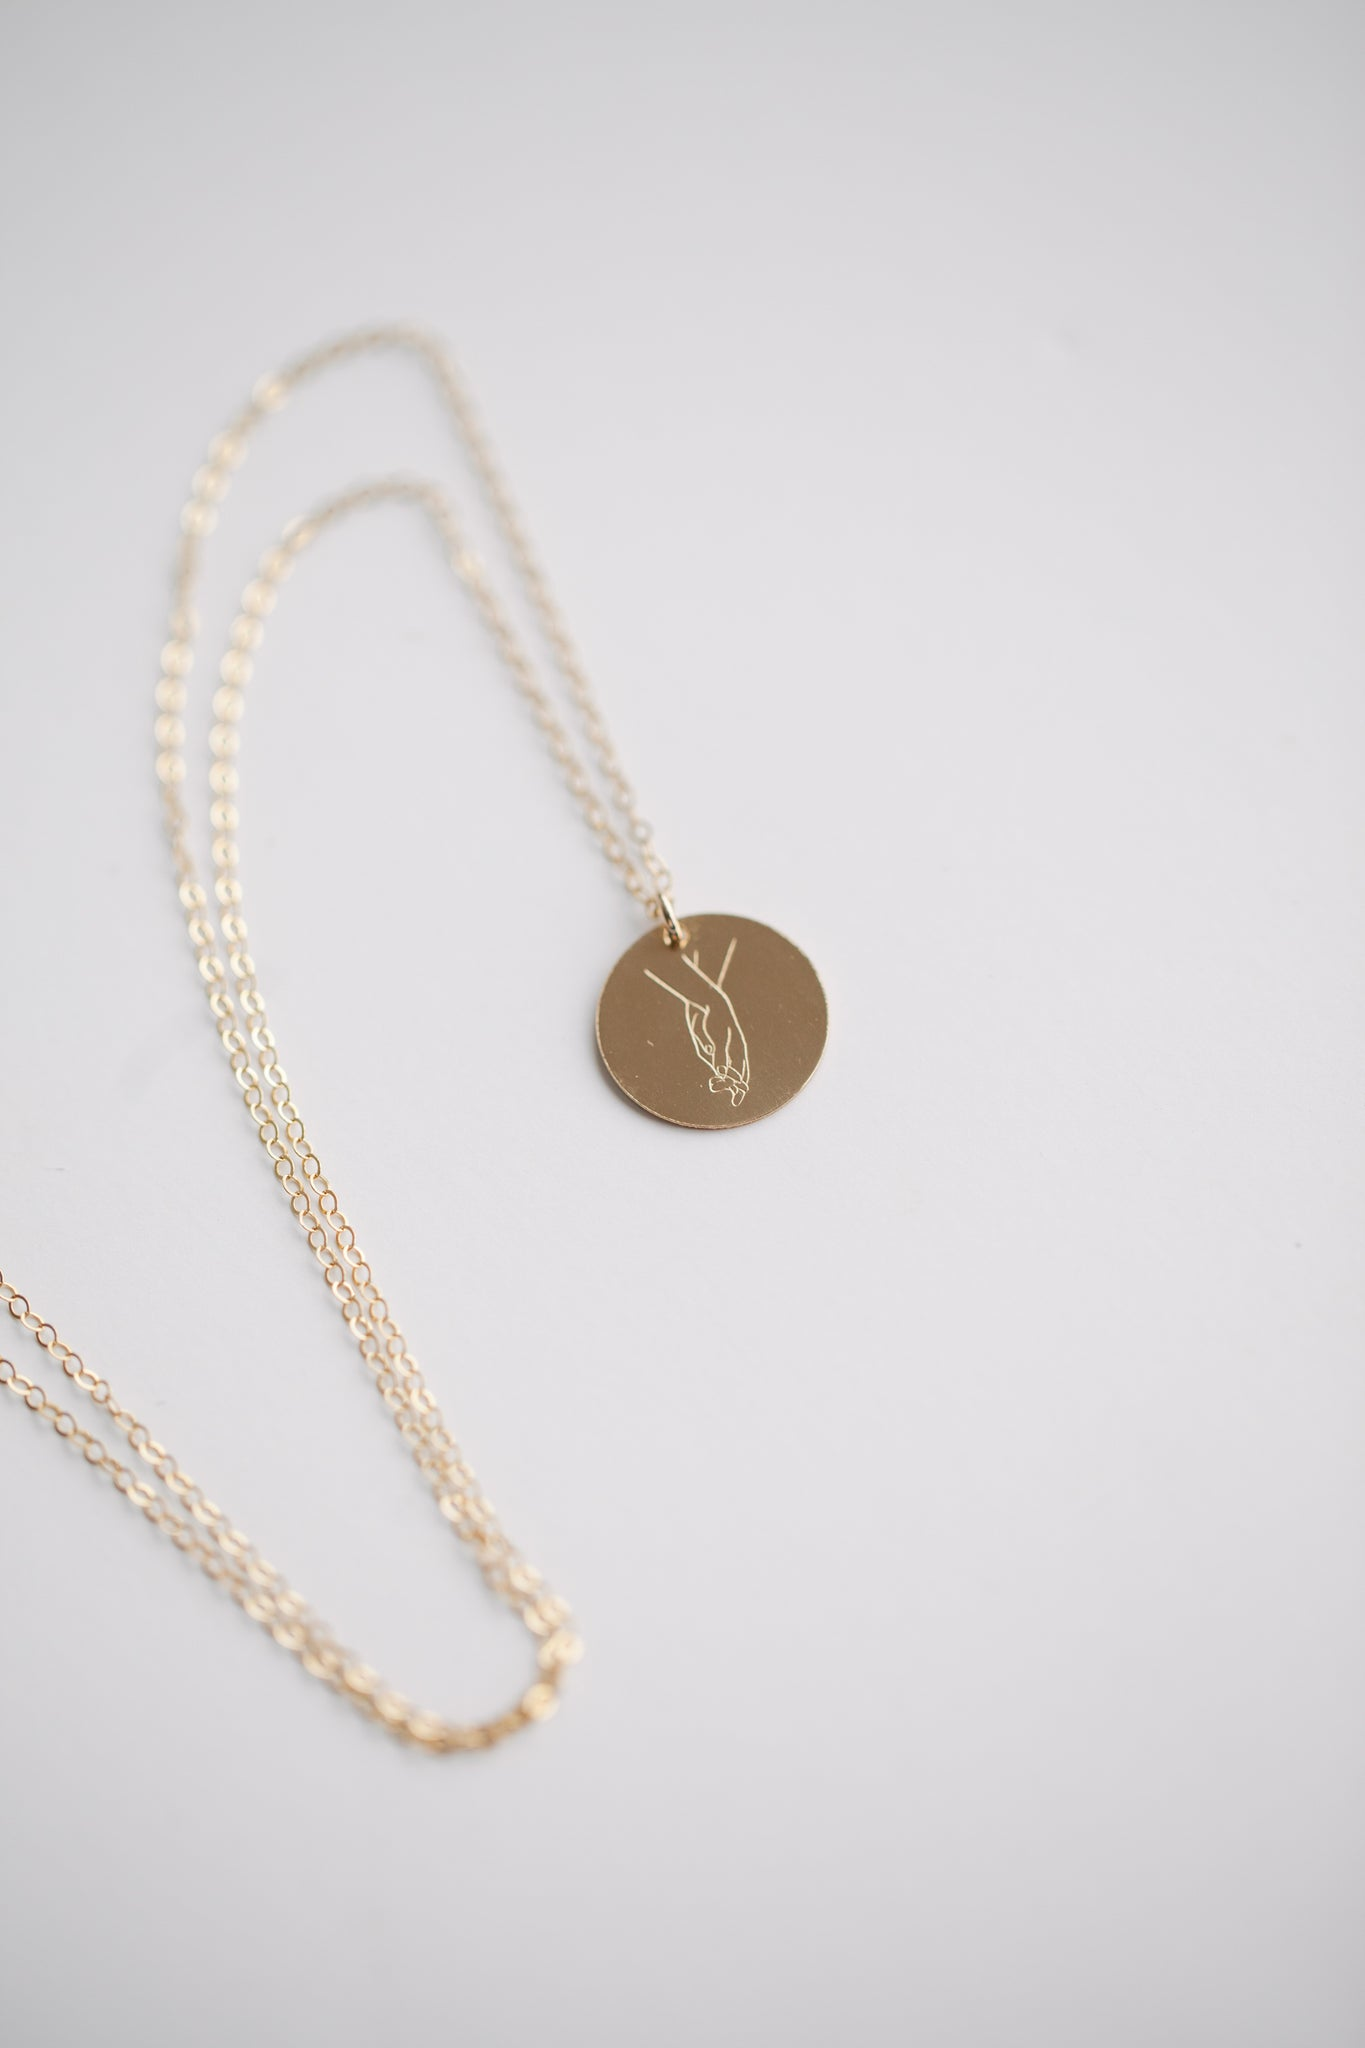 Entwined Necklace - 14k Gold Fill